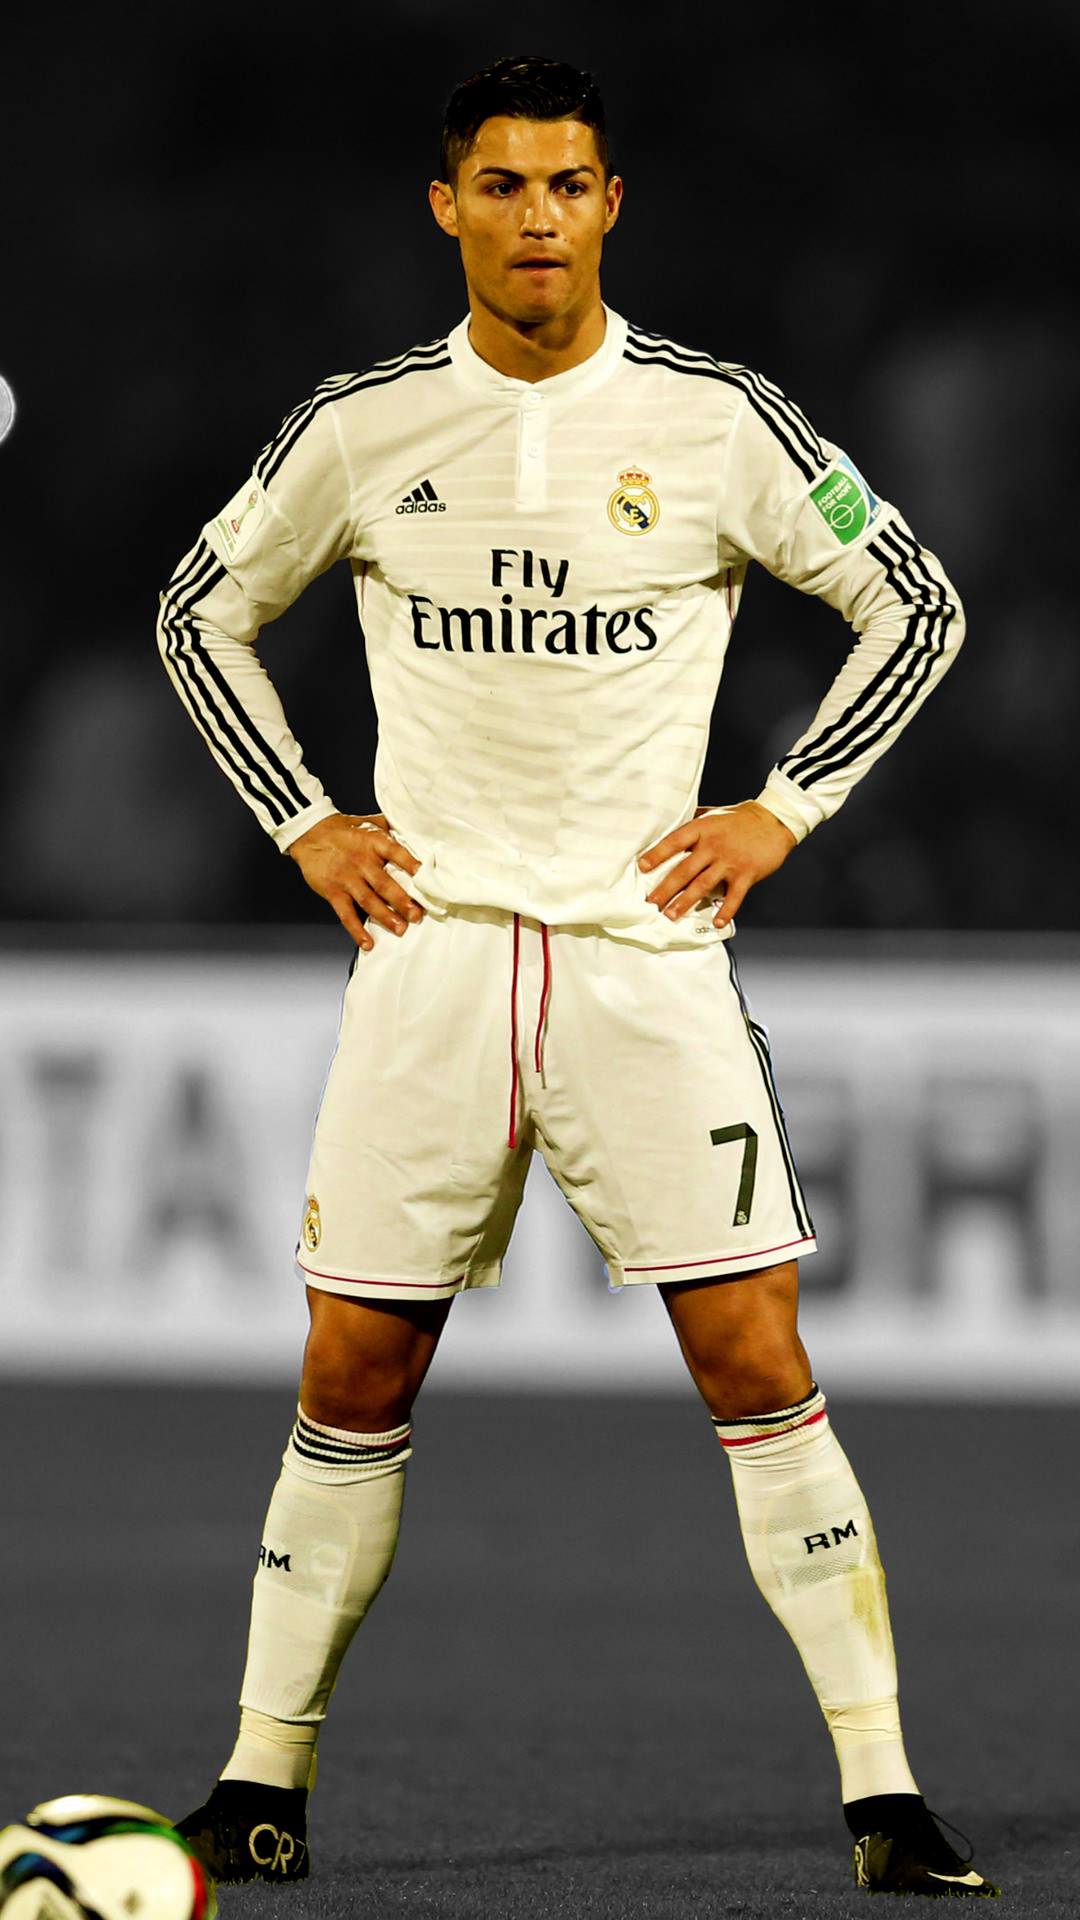 Cristiano Ronaldo IPhone HD Background.